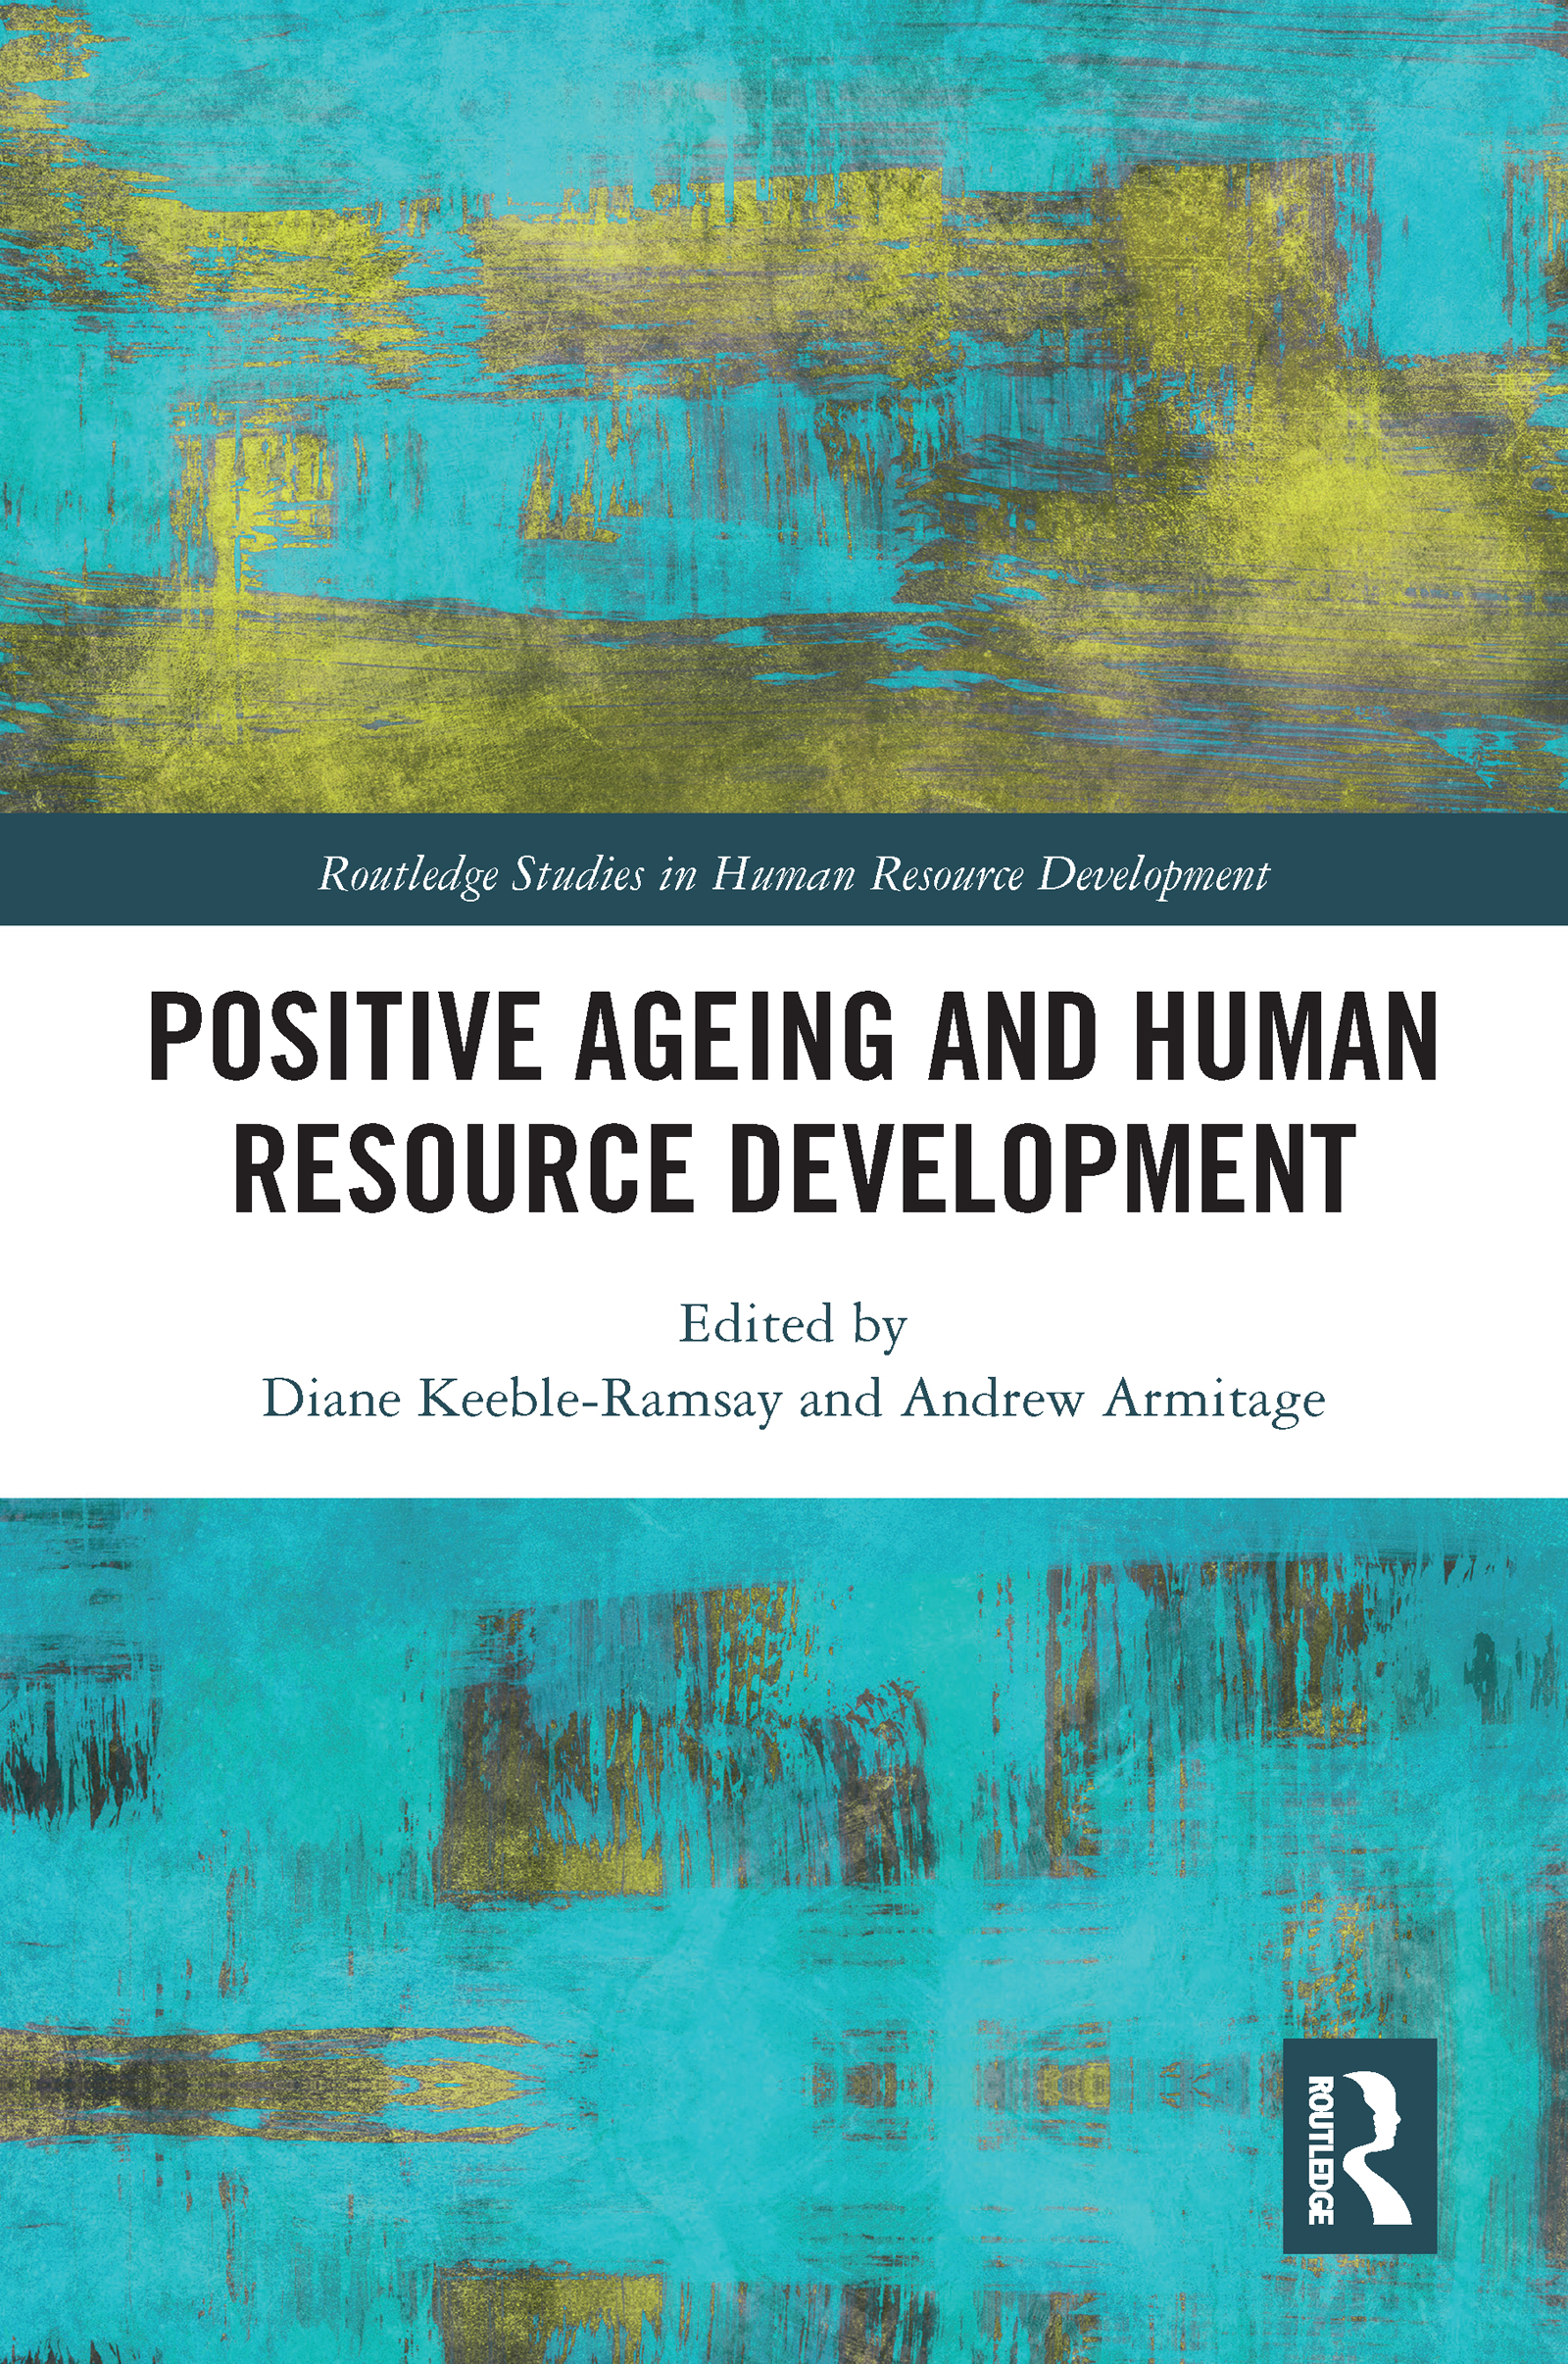 Positive Ageing and Human Resource Development